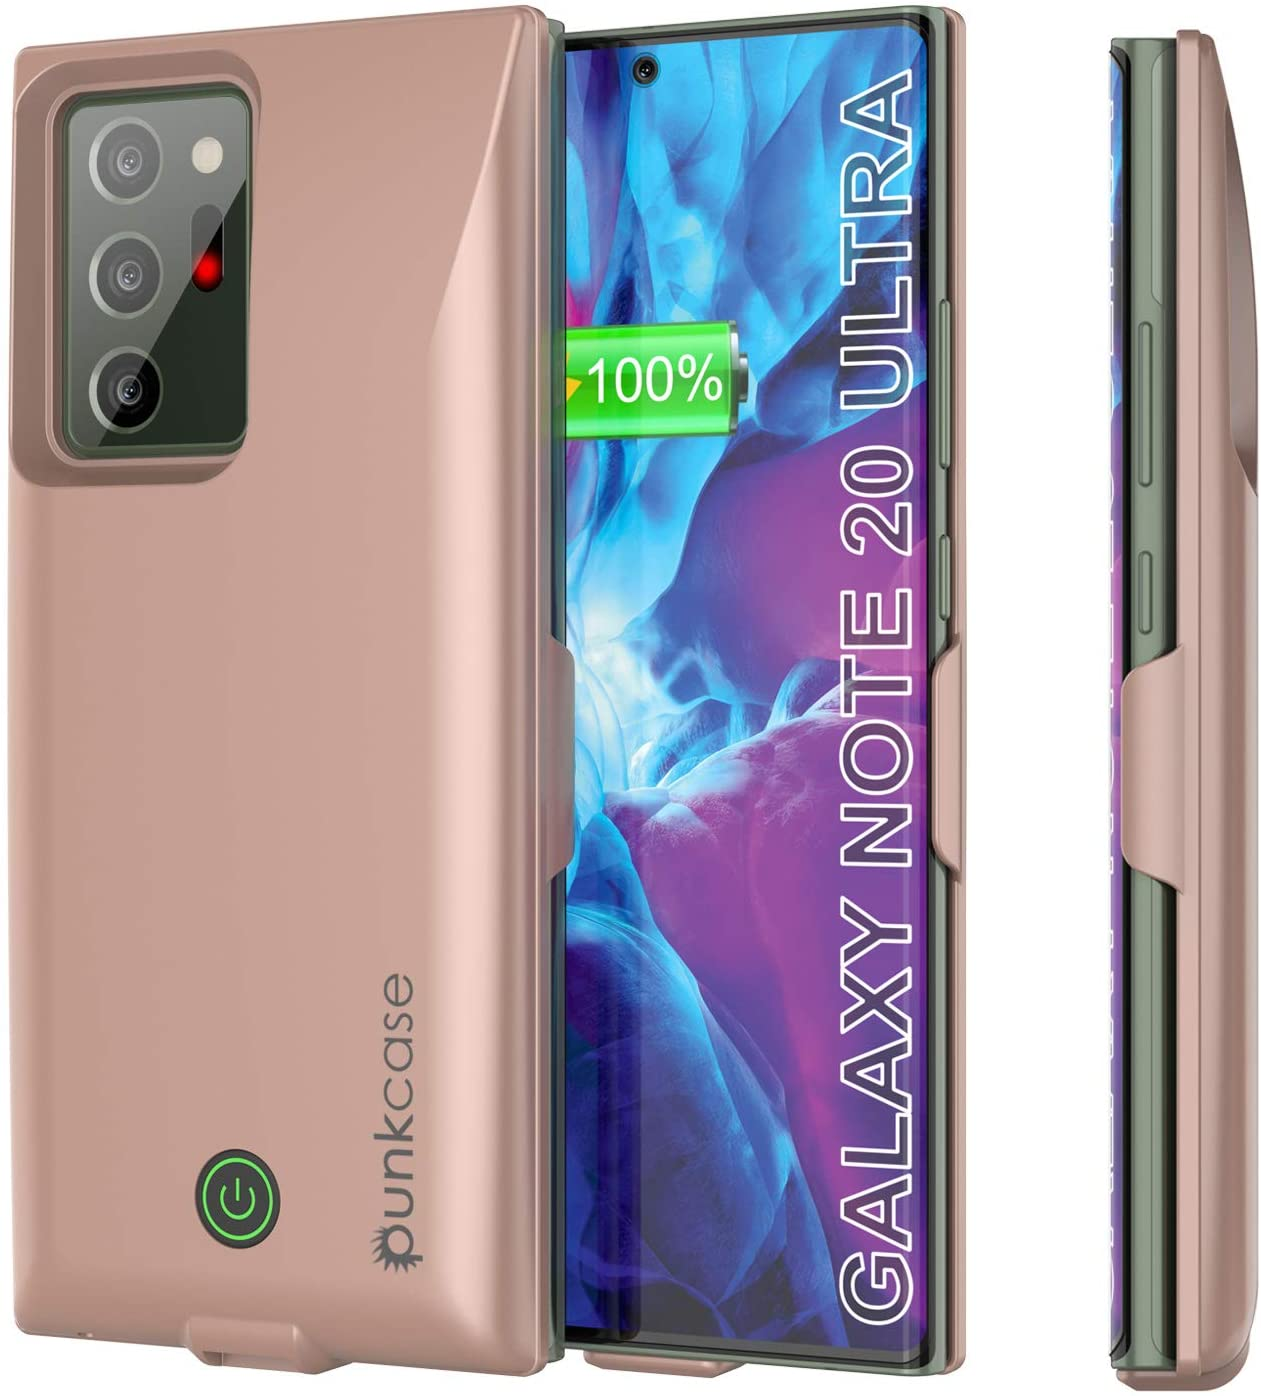 Galaxy Note 20 Ultra 6000mAH Battery Charger PunkJuice 2.0 Slim Case [Rose-Gold]